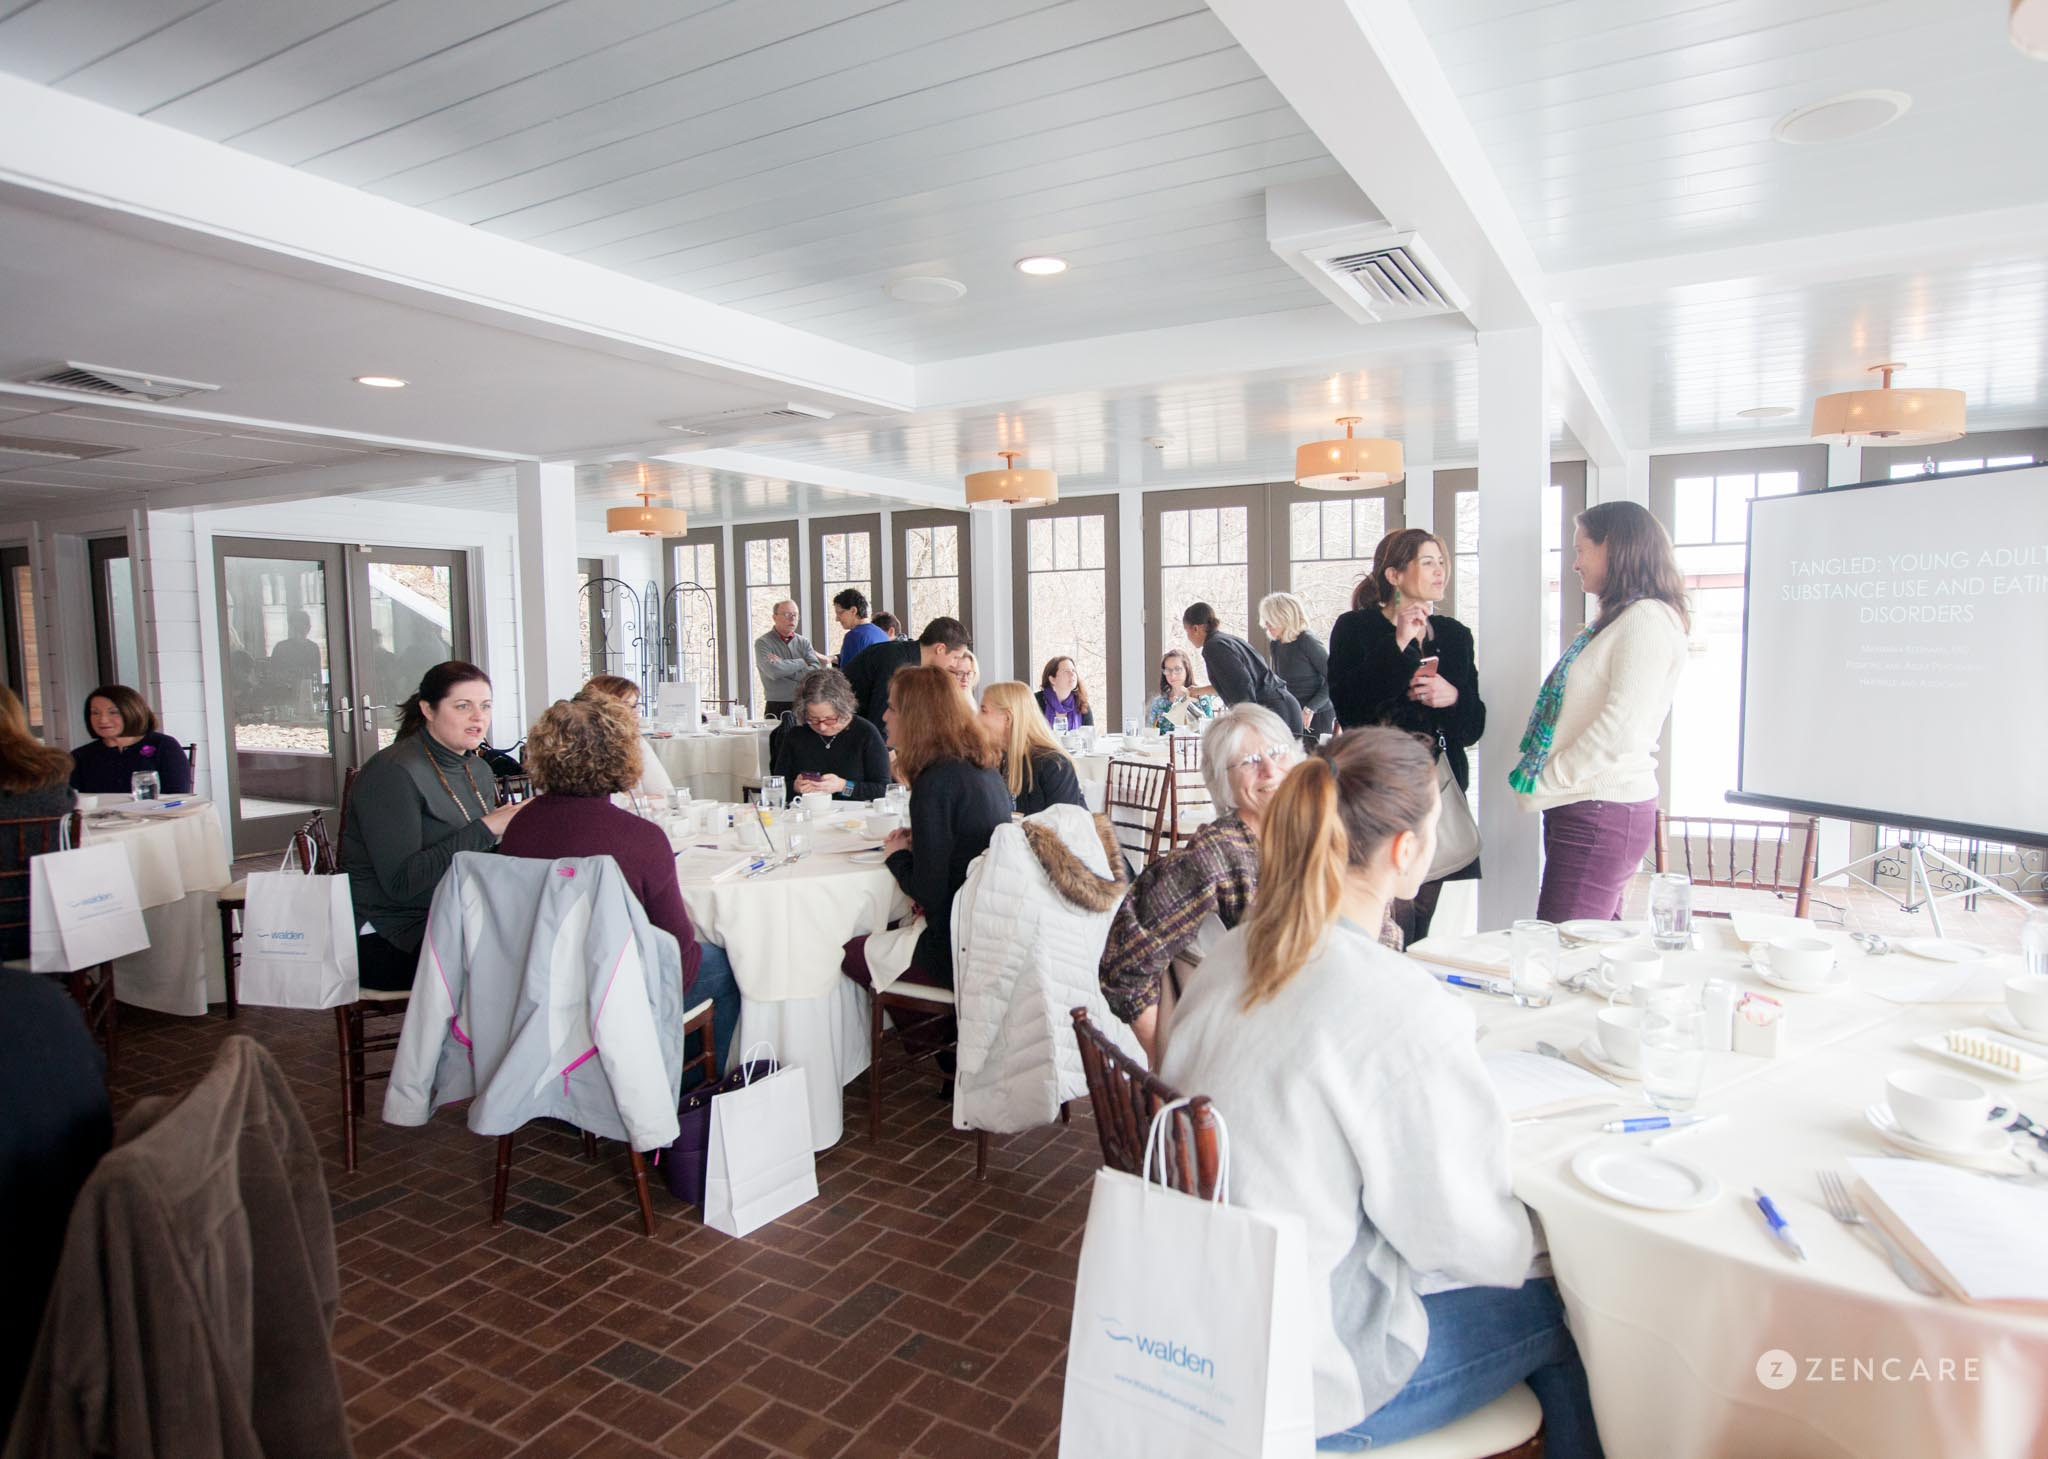 Tangled_Young adult eating disorder and addiction event_Walden_Granite_Zencare-5.jpg